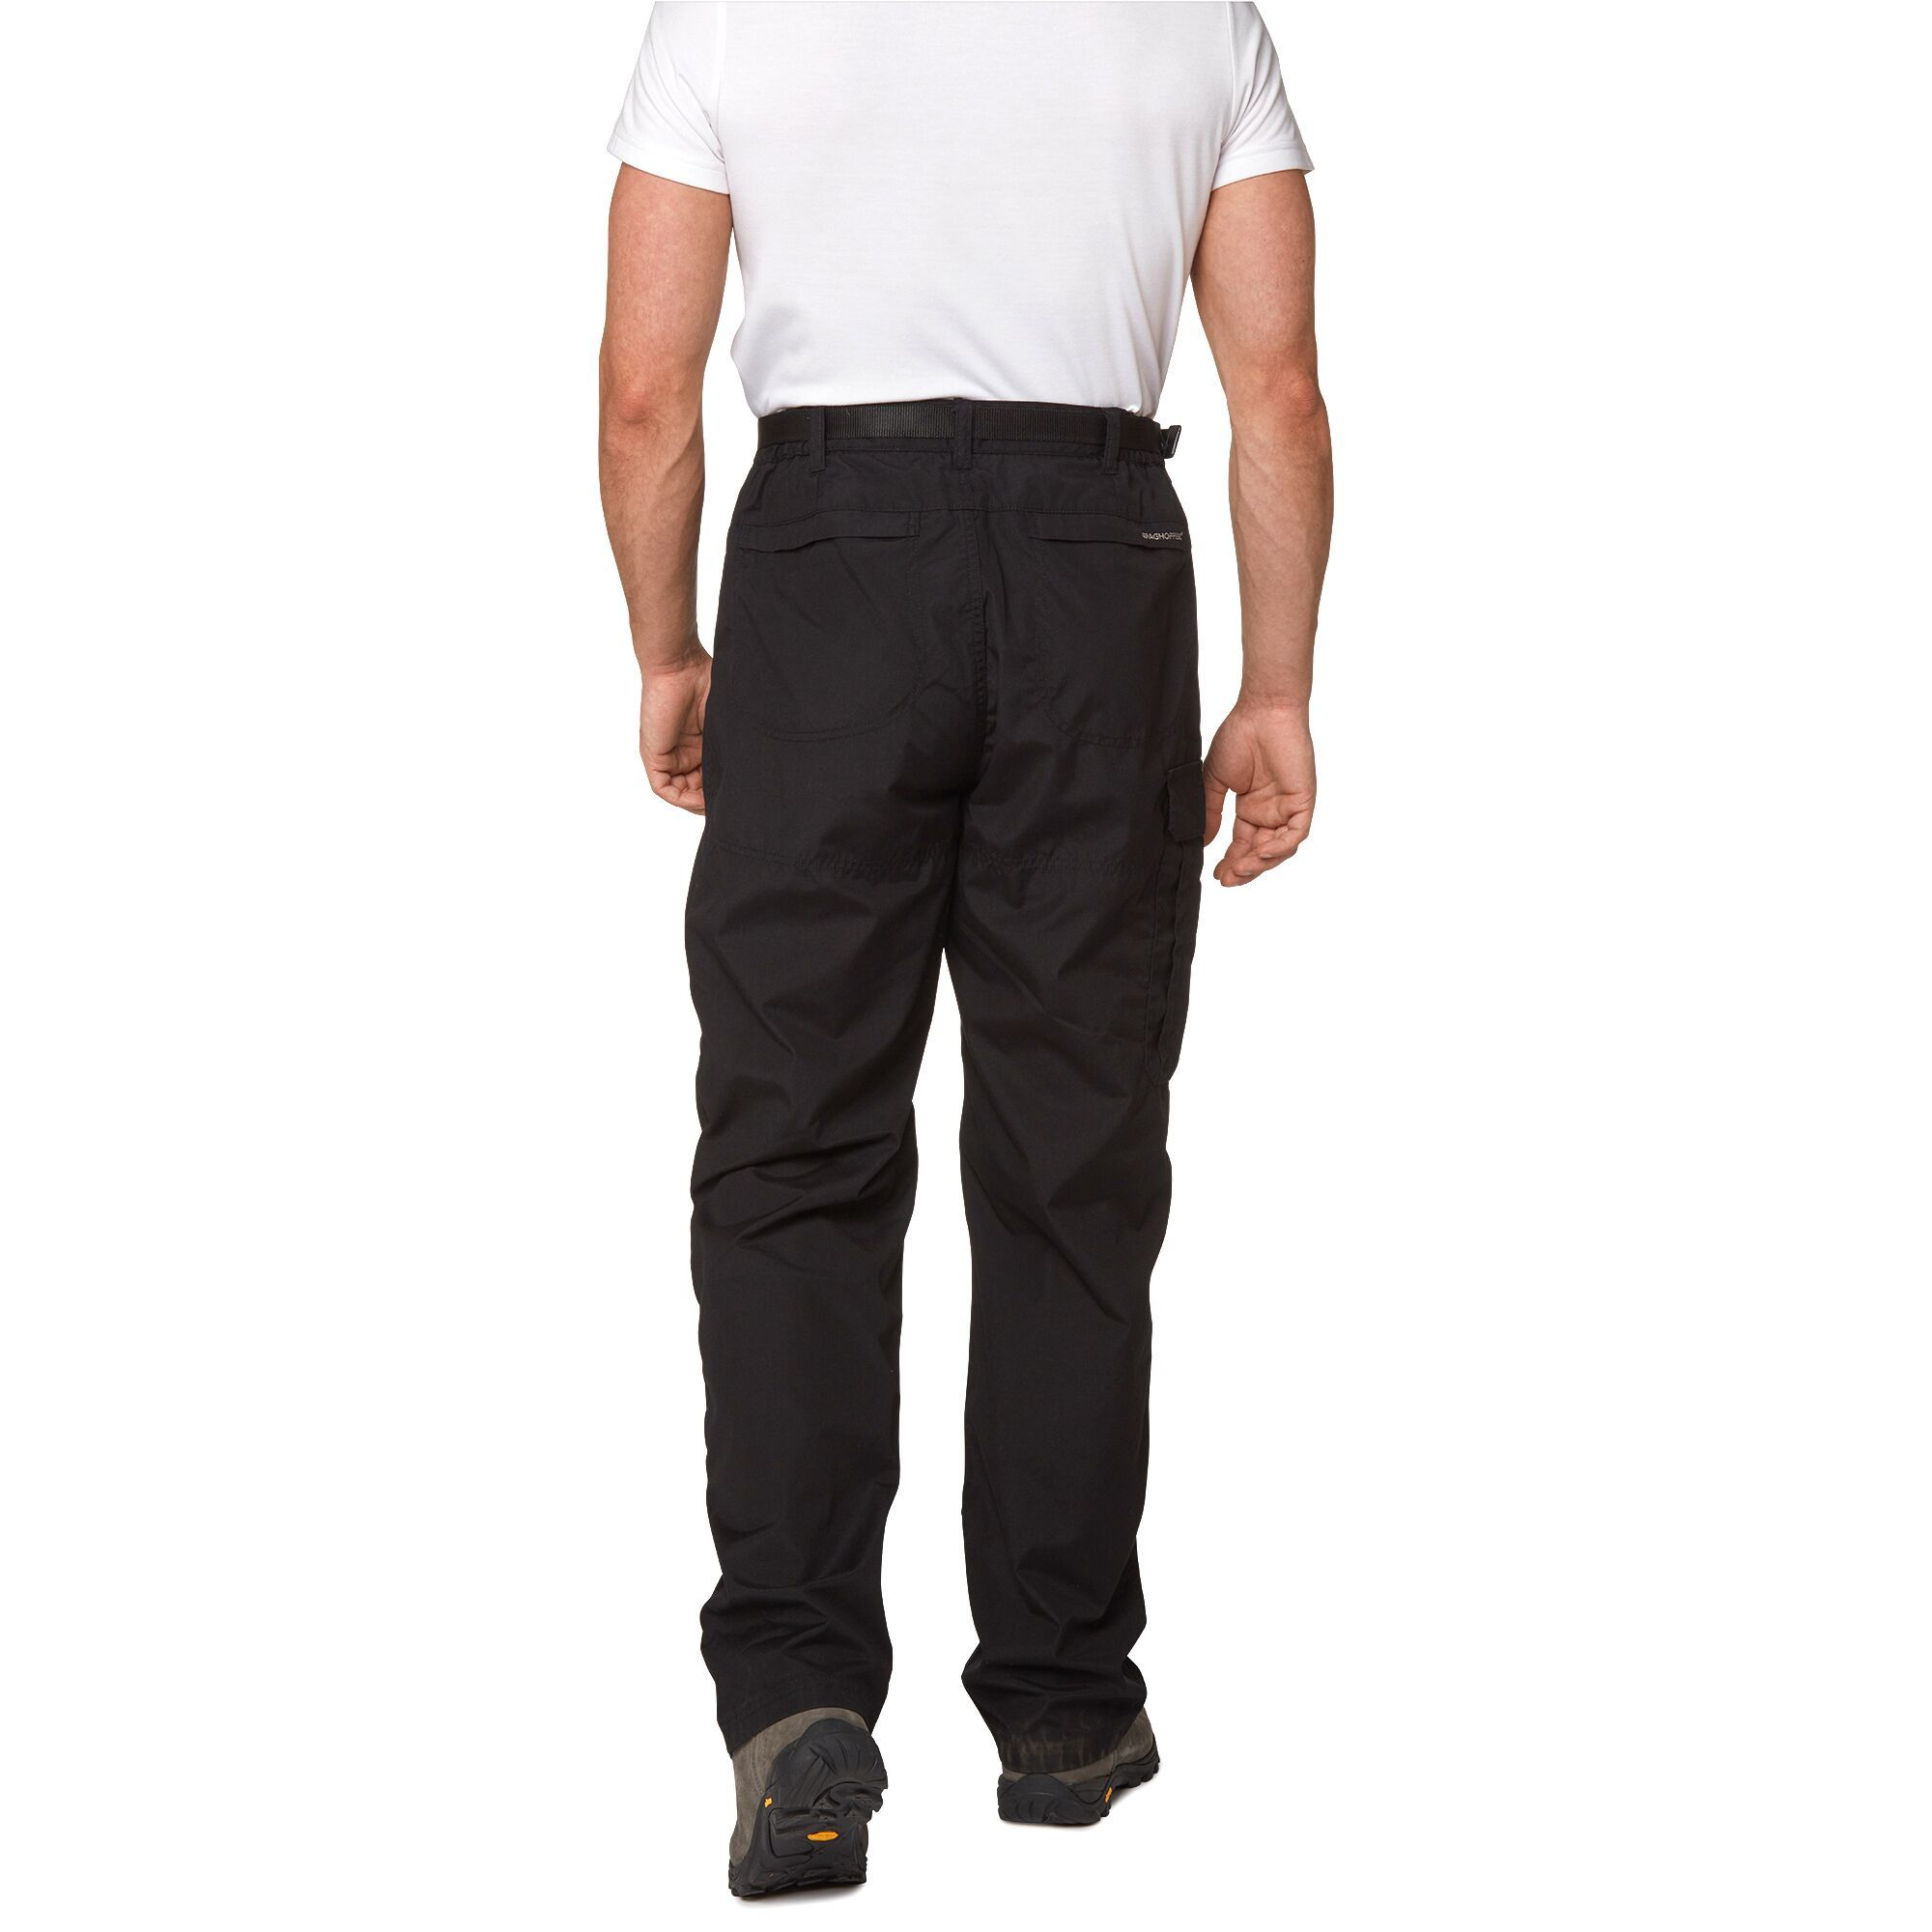 Craghoppers-Mens-Classic-Kiwi-Walking-Hiking-Golf-Outdoor-Trousers-RRP-50 thumbnail 8